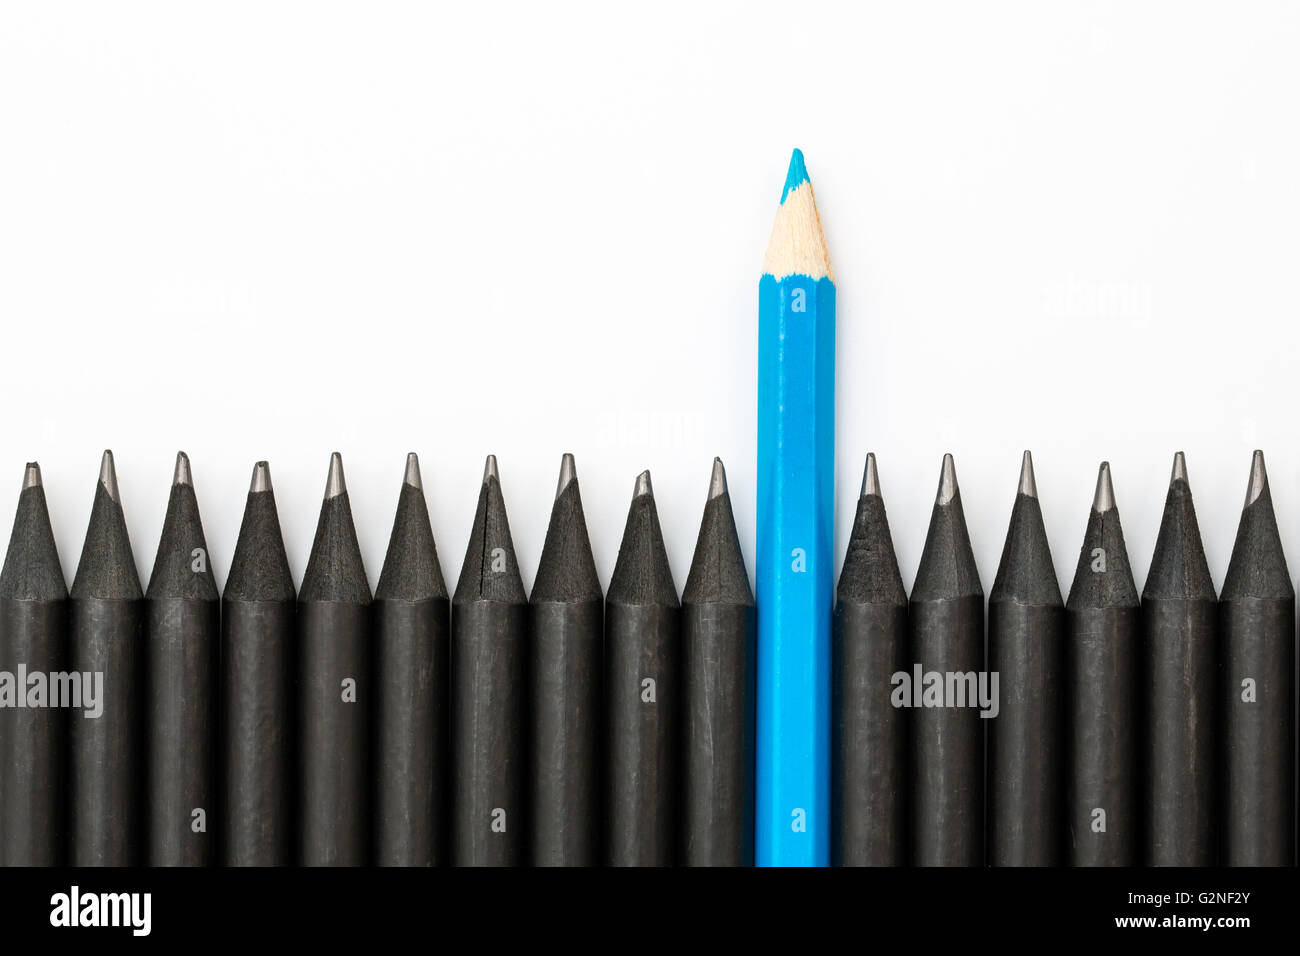 Blue pencil standing out from the row of black pencils. - Stock Image